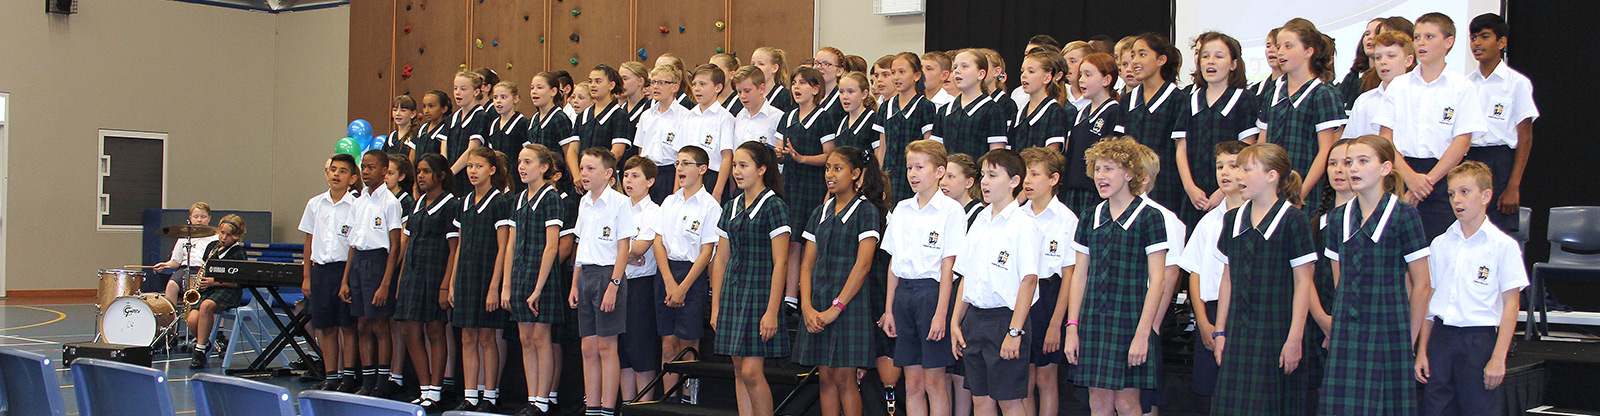 Year 6 singing at the Celebration Assembly